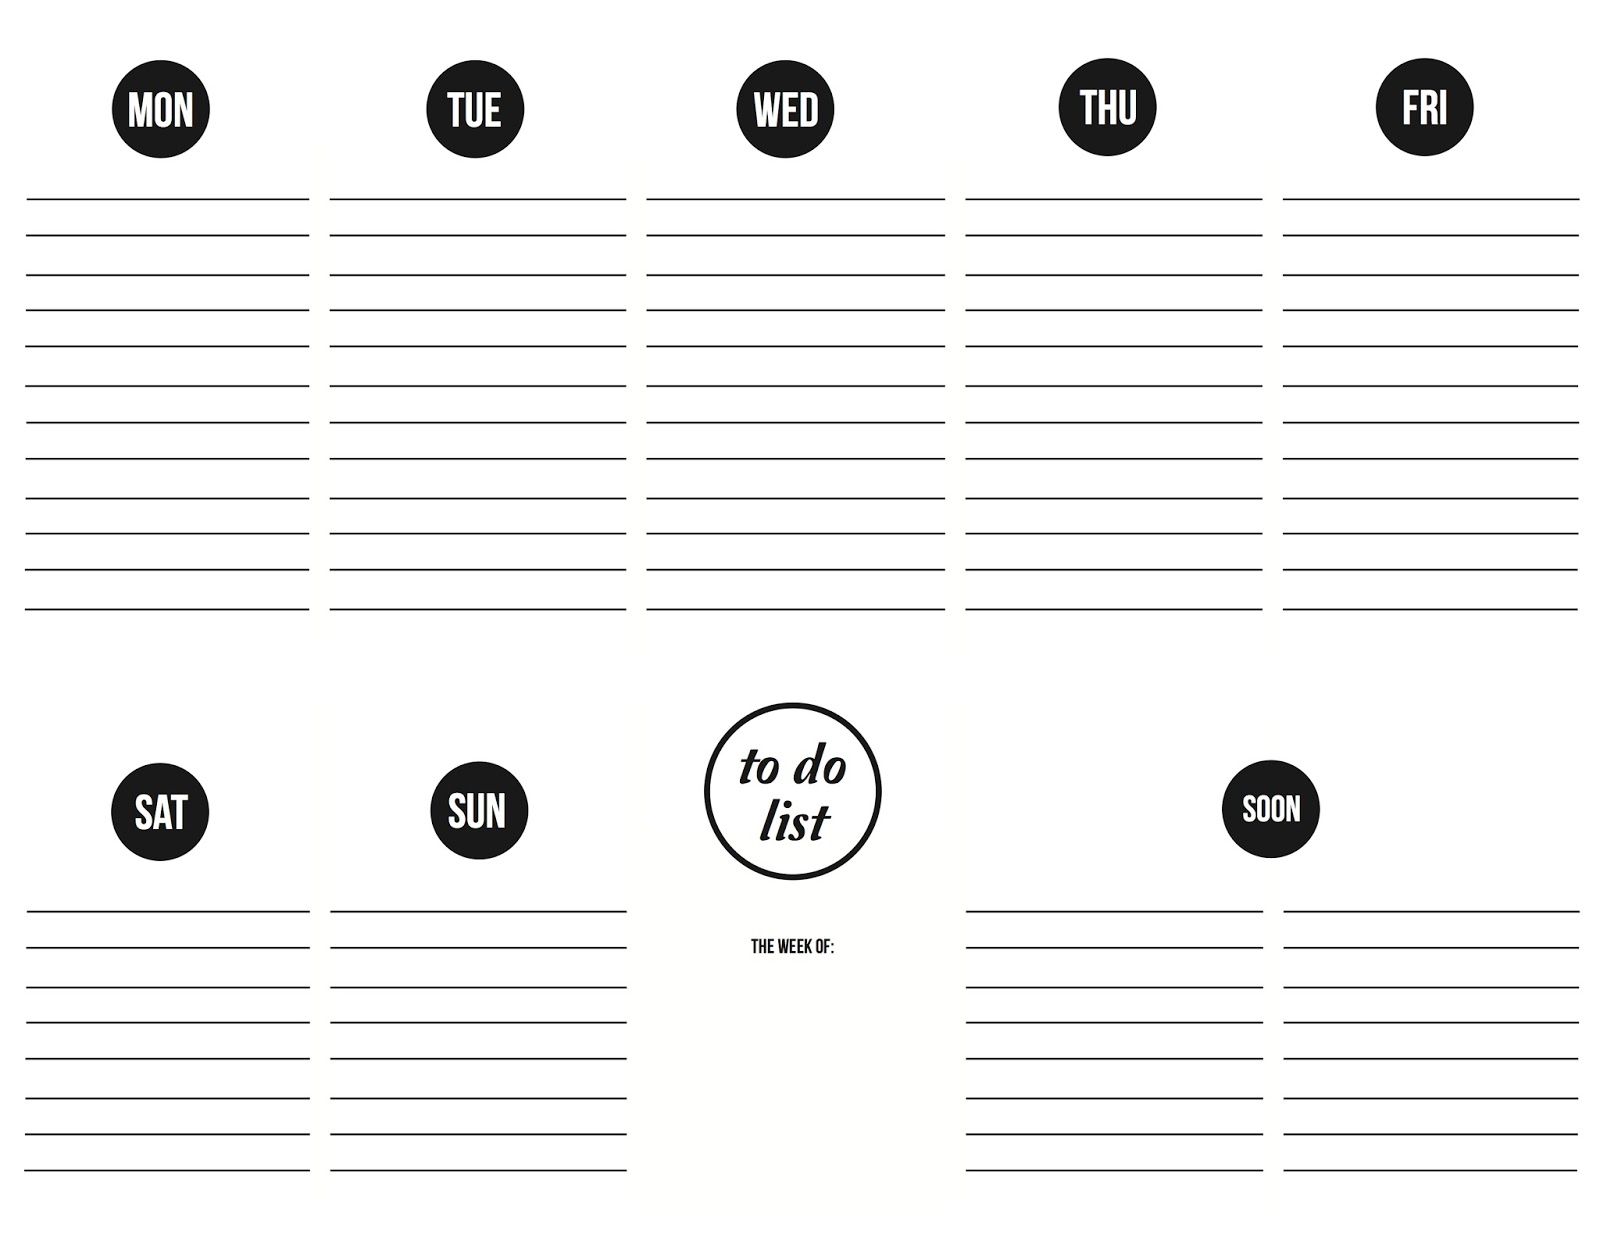 Weekly Calendar With To Do List : The obsessive imagist art design life get organized